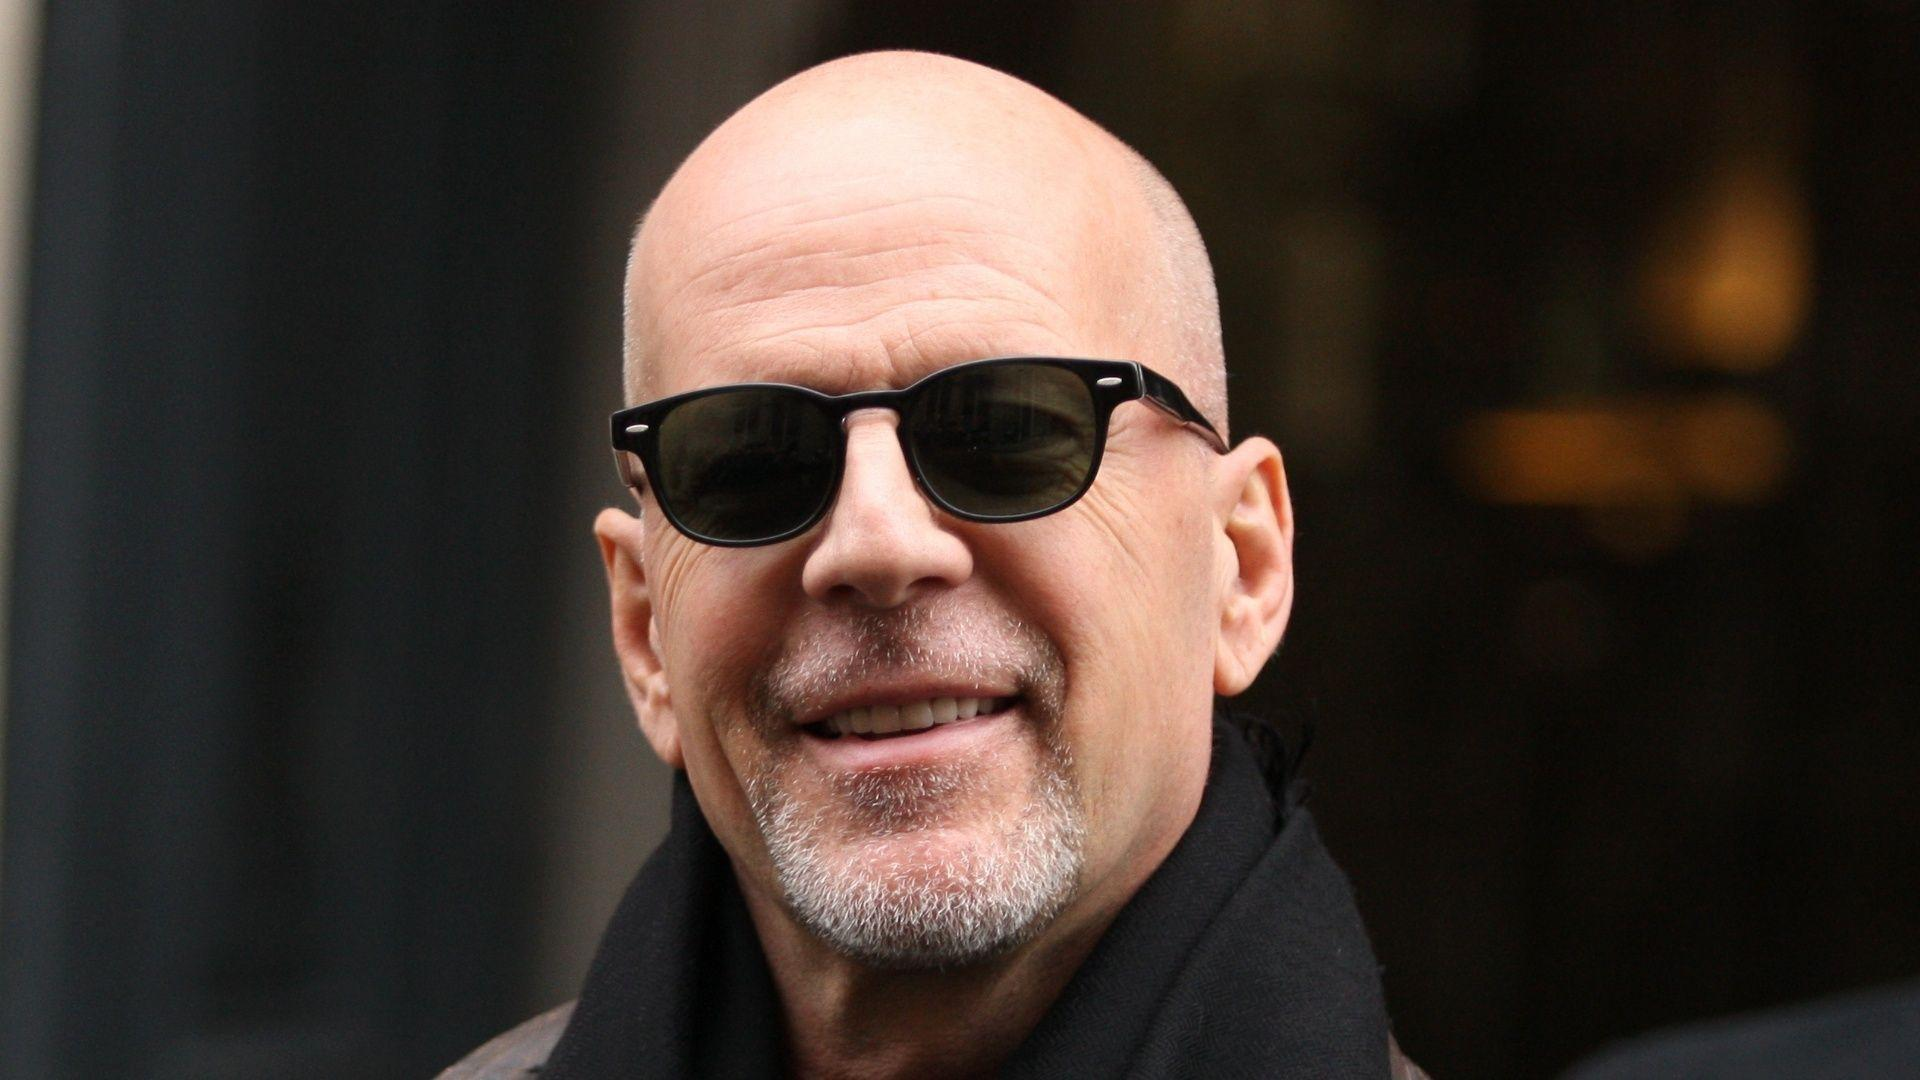 hd wallpaper bruce willis hd - Background Wallpapers for your ...